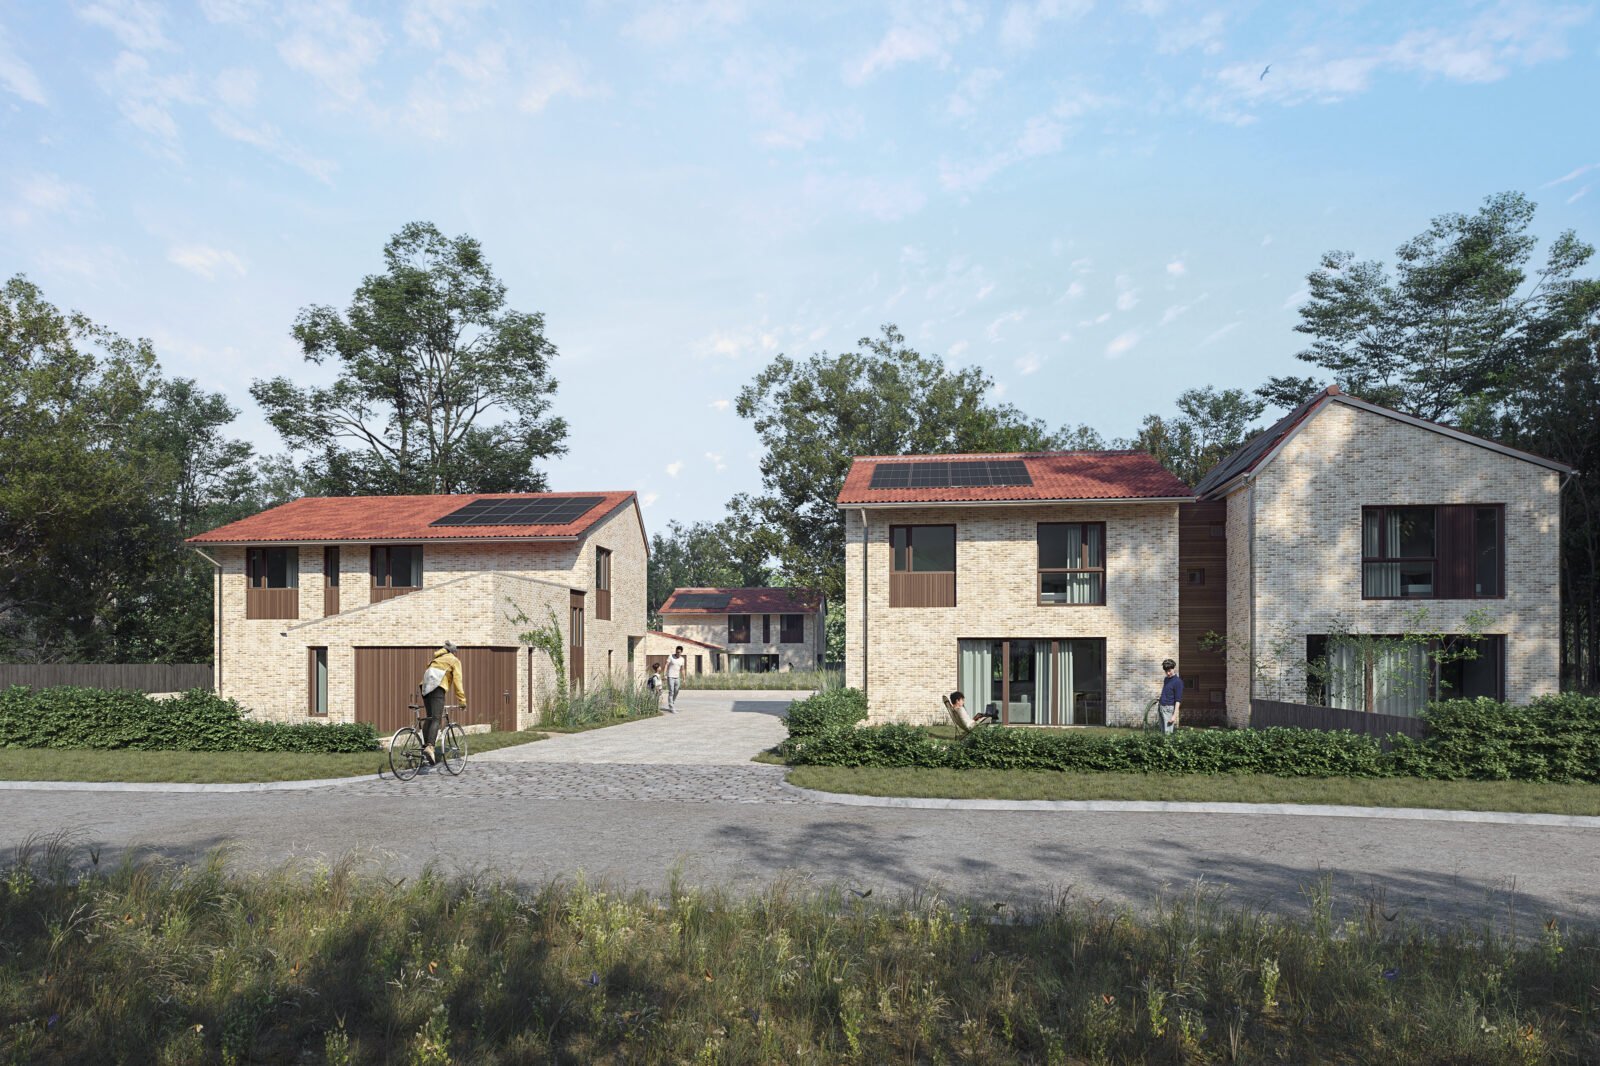 Street view of sustainable houses in Hampshire, New Forest